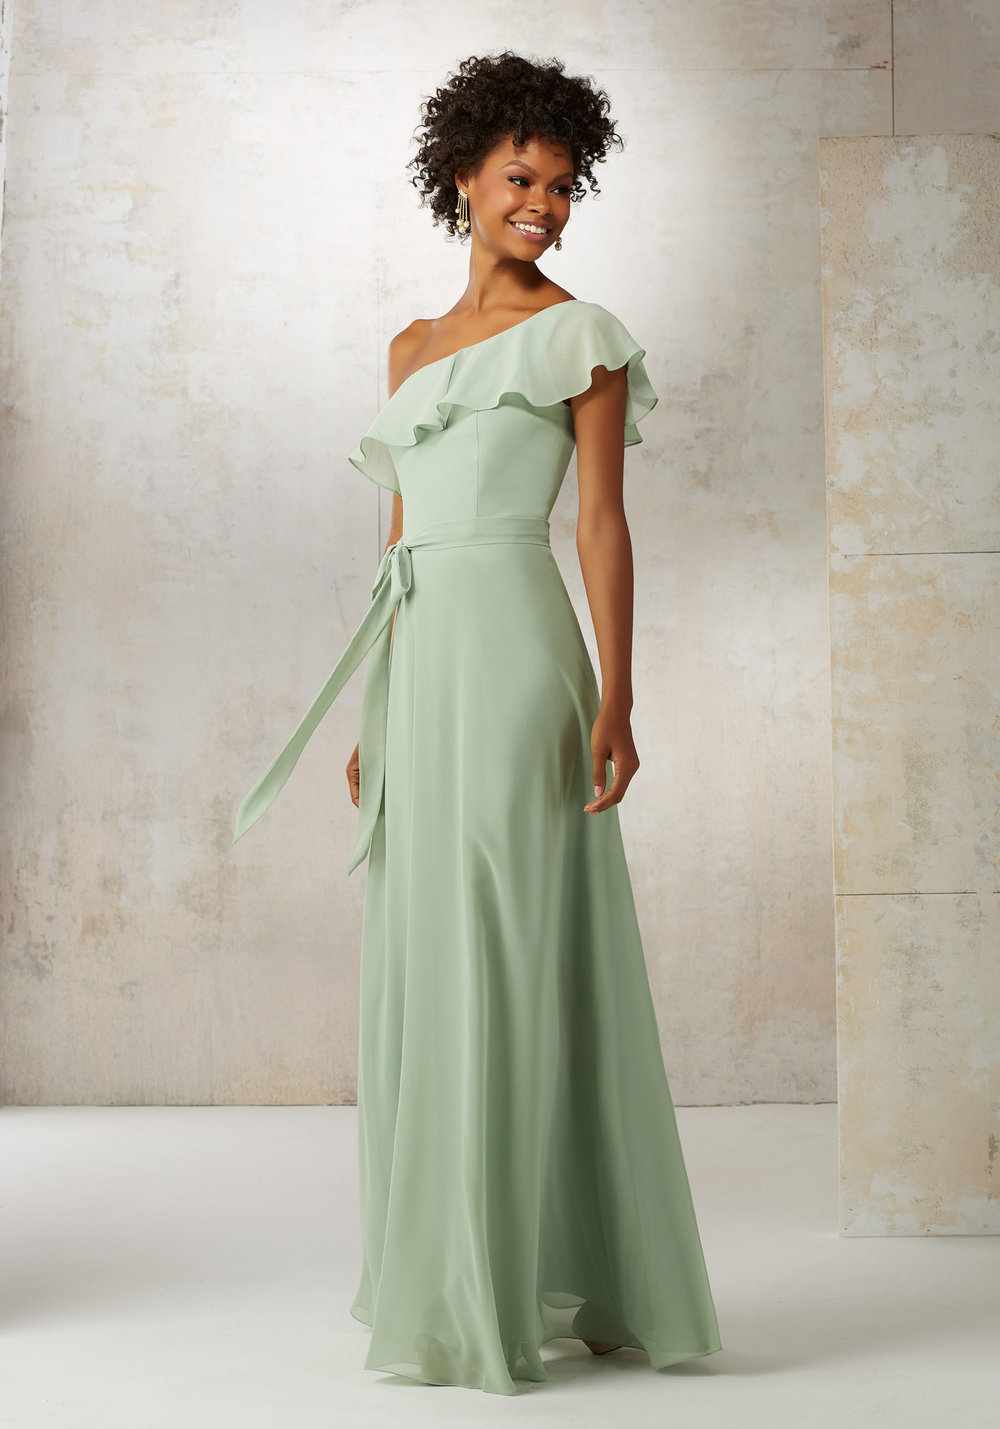 Boho One Shoulder Chiffon Bridesmaids dress